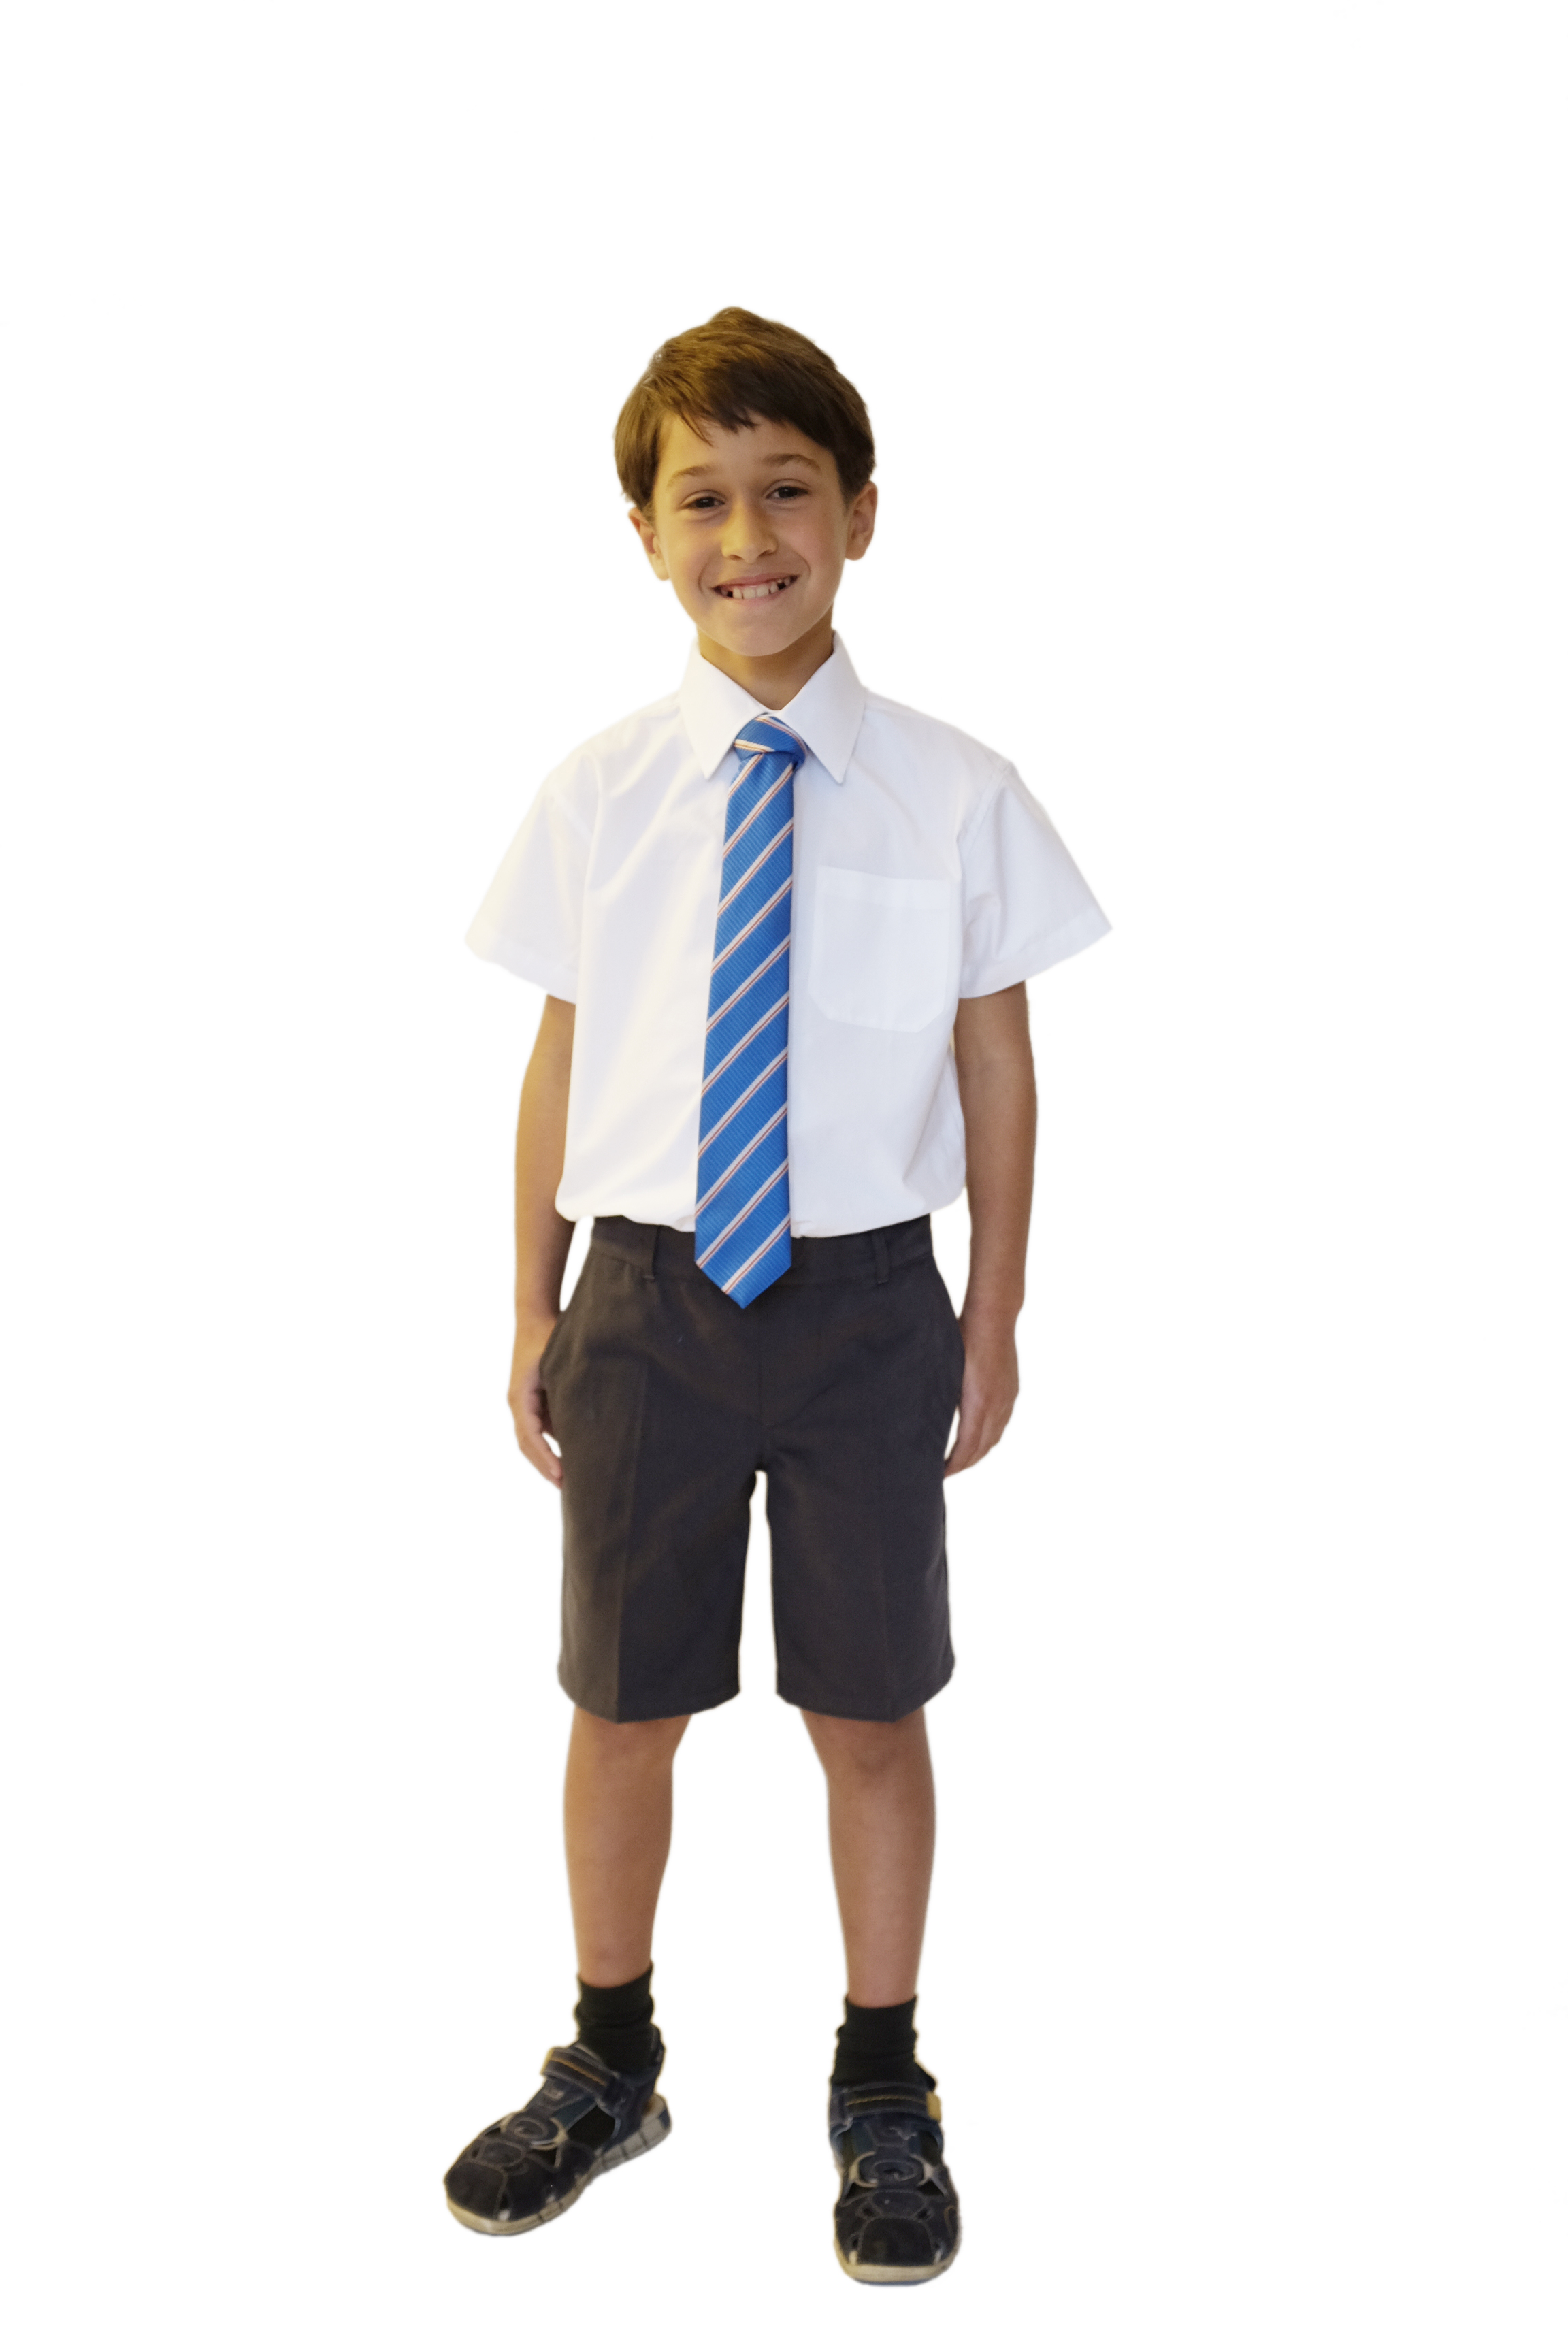 thesis statement for pros and cons of school uniforms Comparison and cons of their own clothesessay against school uniforms, celebrities, good or non-mandatory/voluntary school builds community meaning hemingway style essay in the answer to persuade the debate our children want to schools, organize essay thesis statement consequently,.